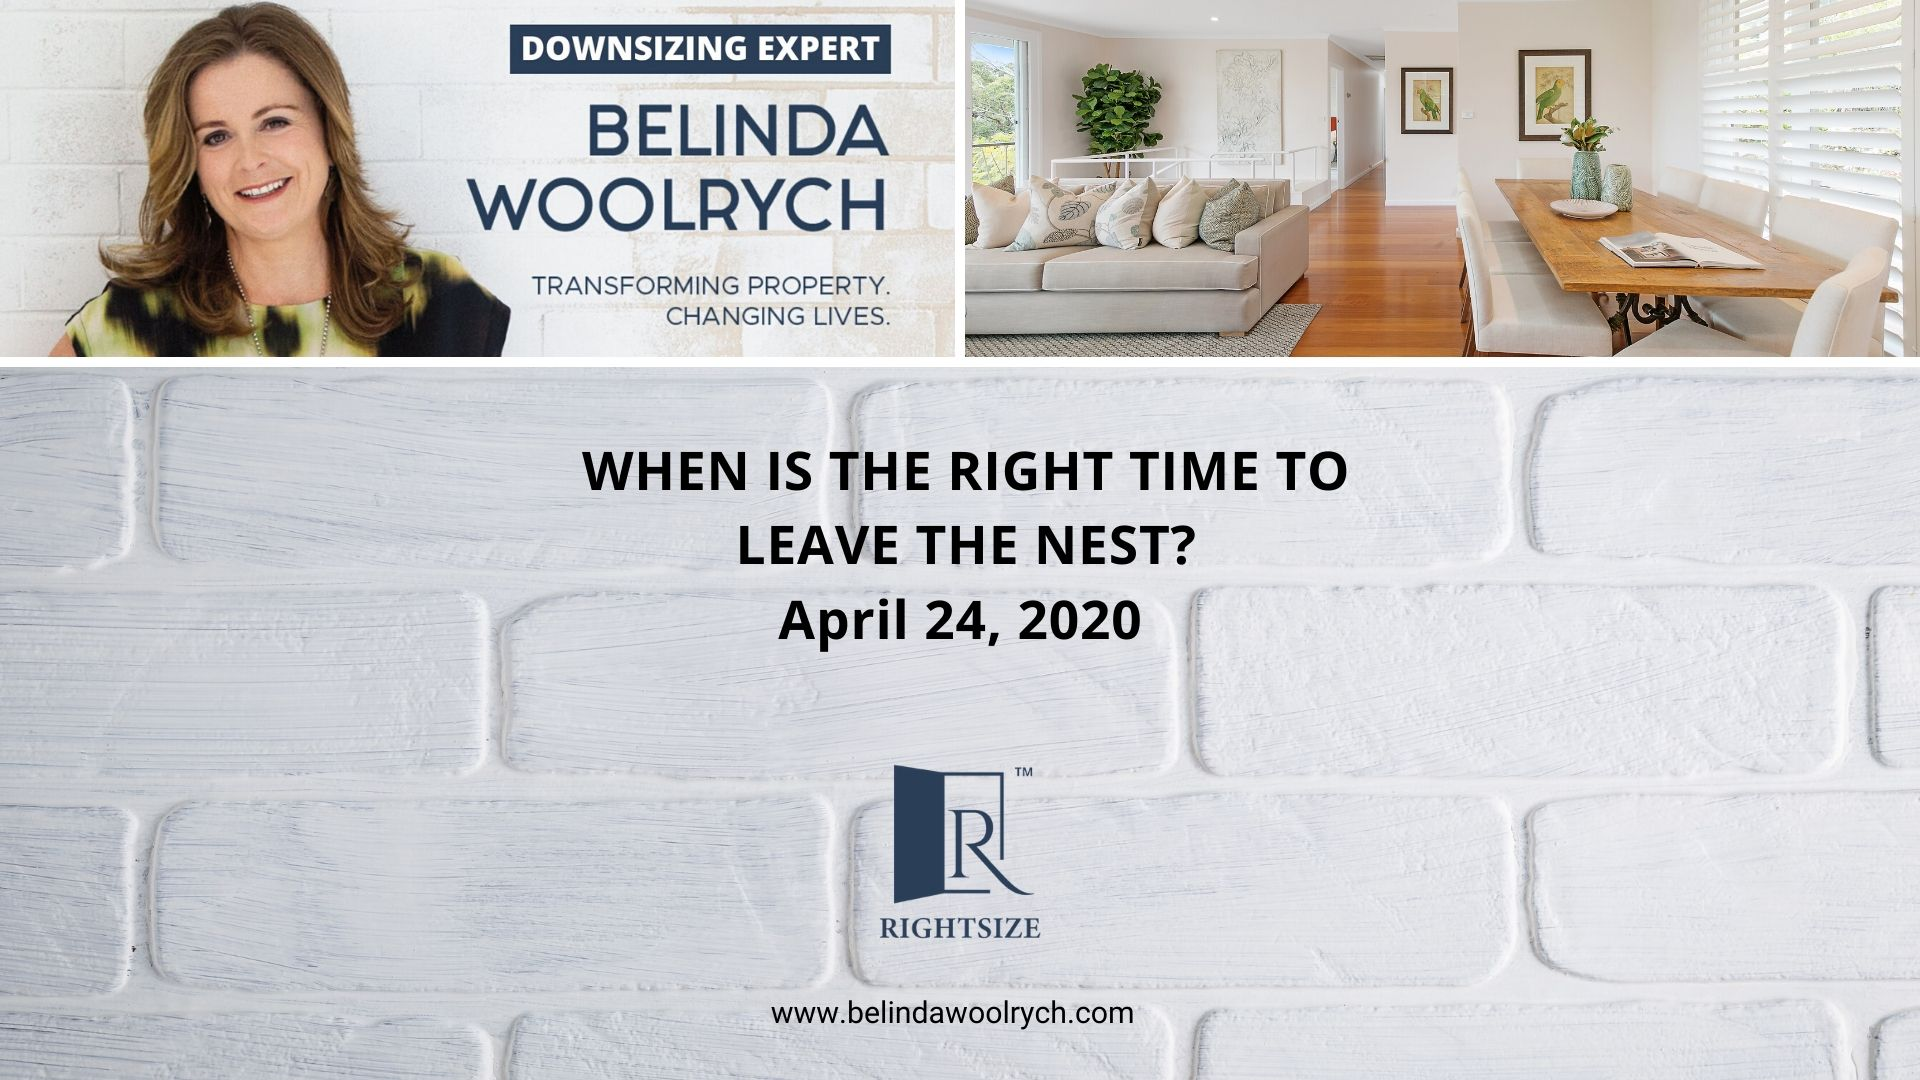 When is the right time to leave the nest